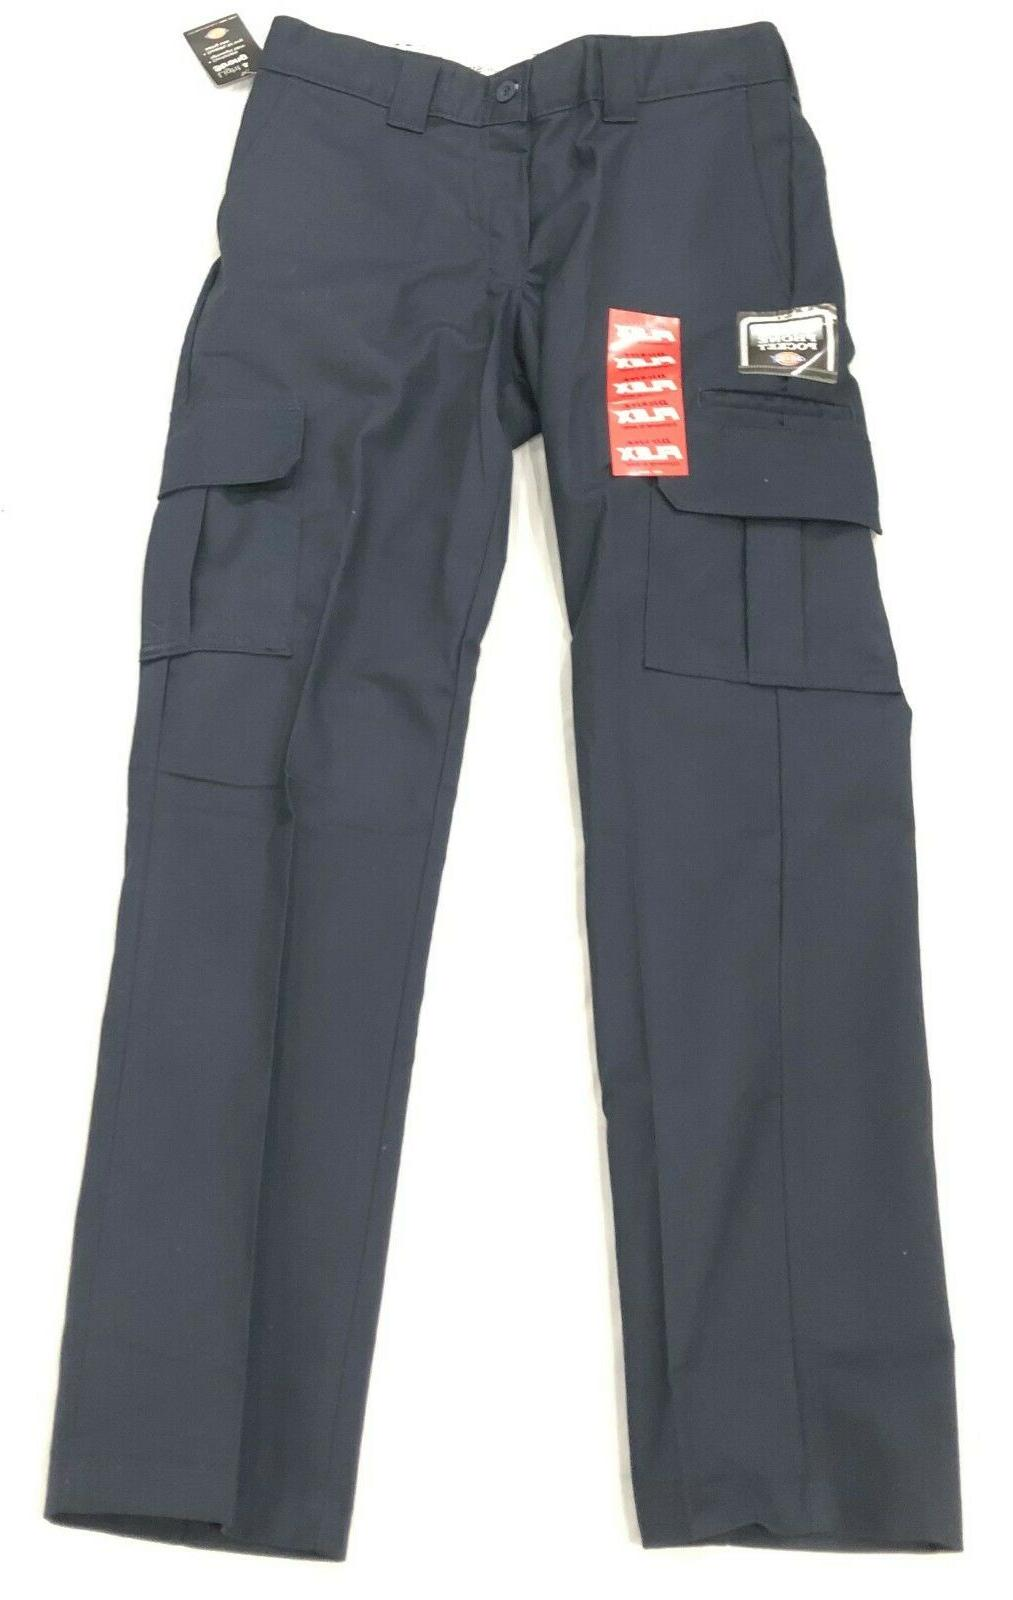 dickie s slim and straight pants blue